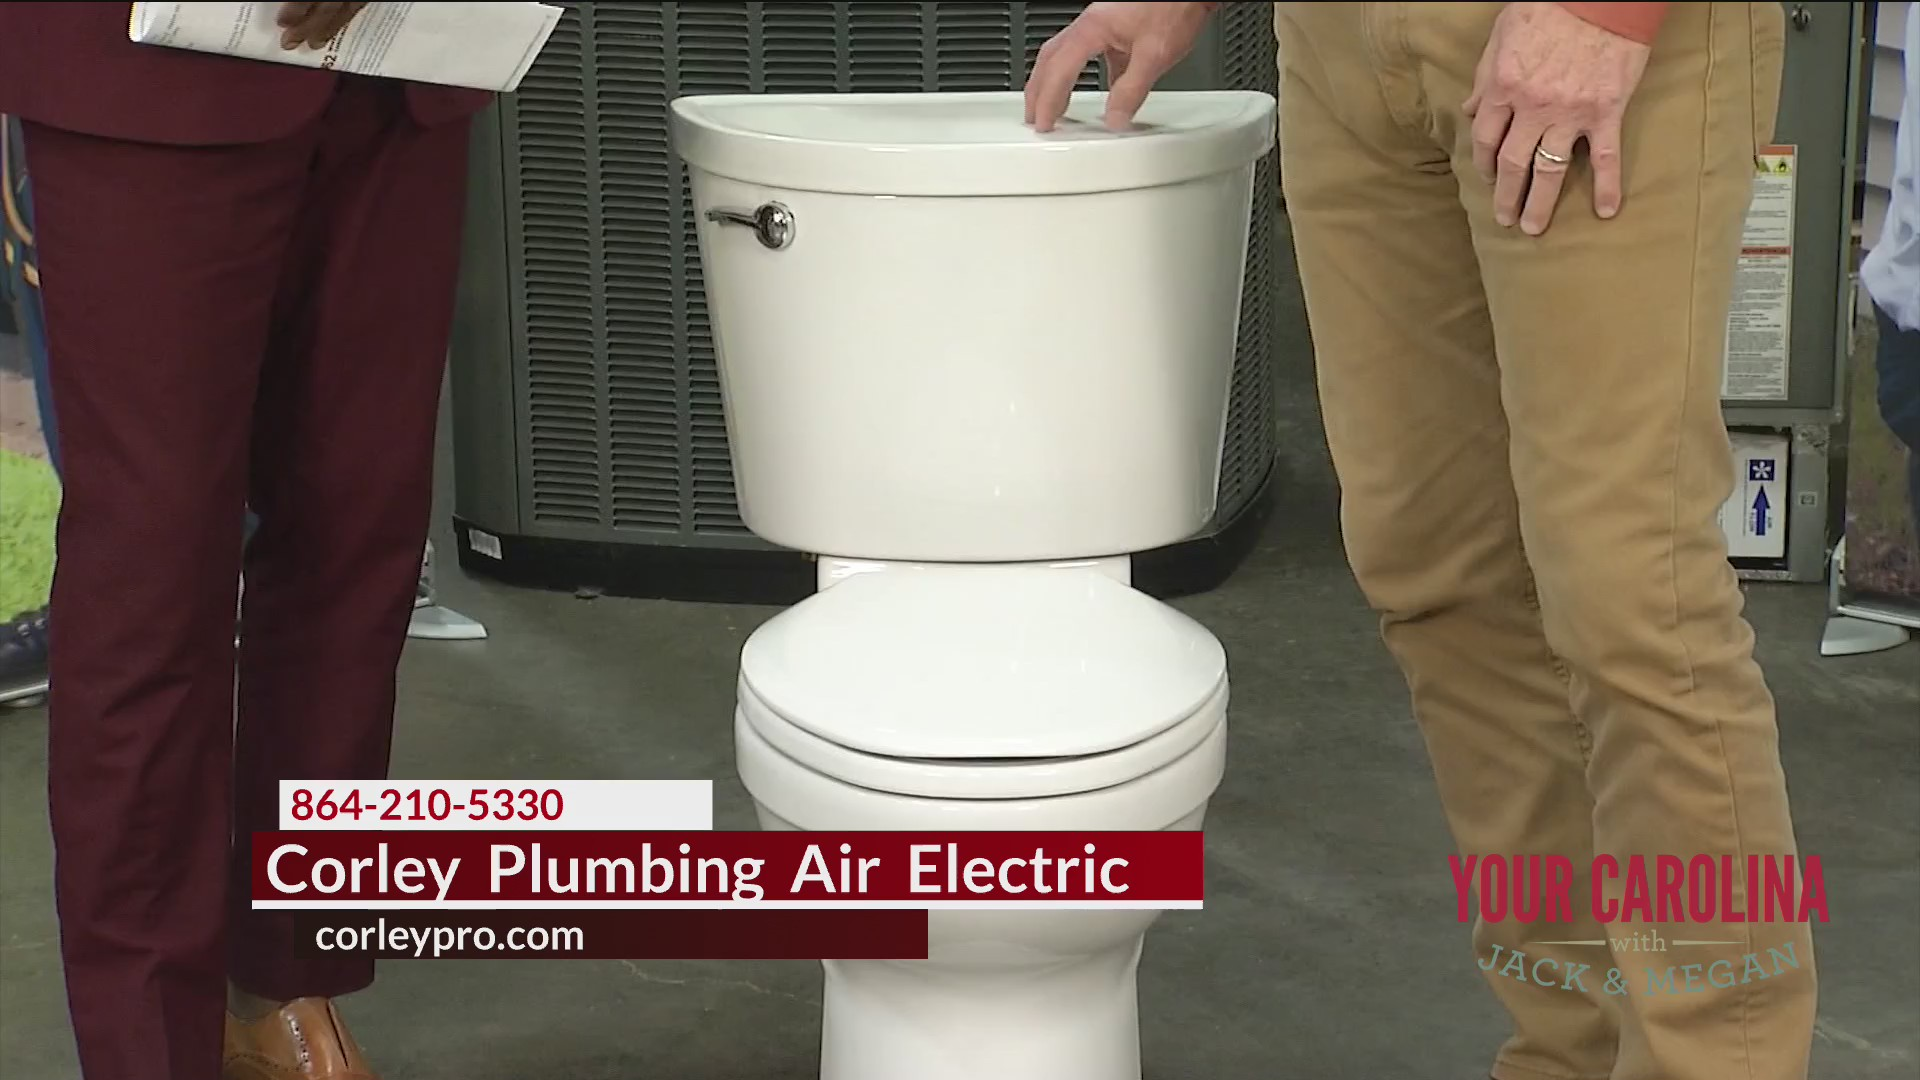 Corley Plumbing Air Electric - The Importance Of Toilet Maintenance